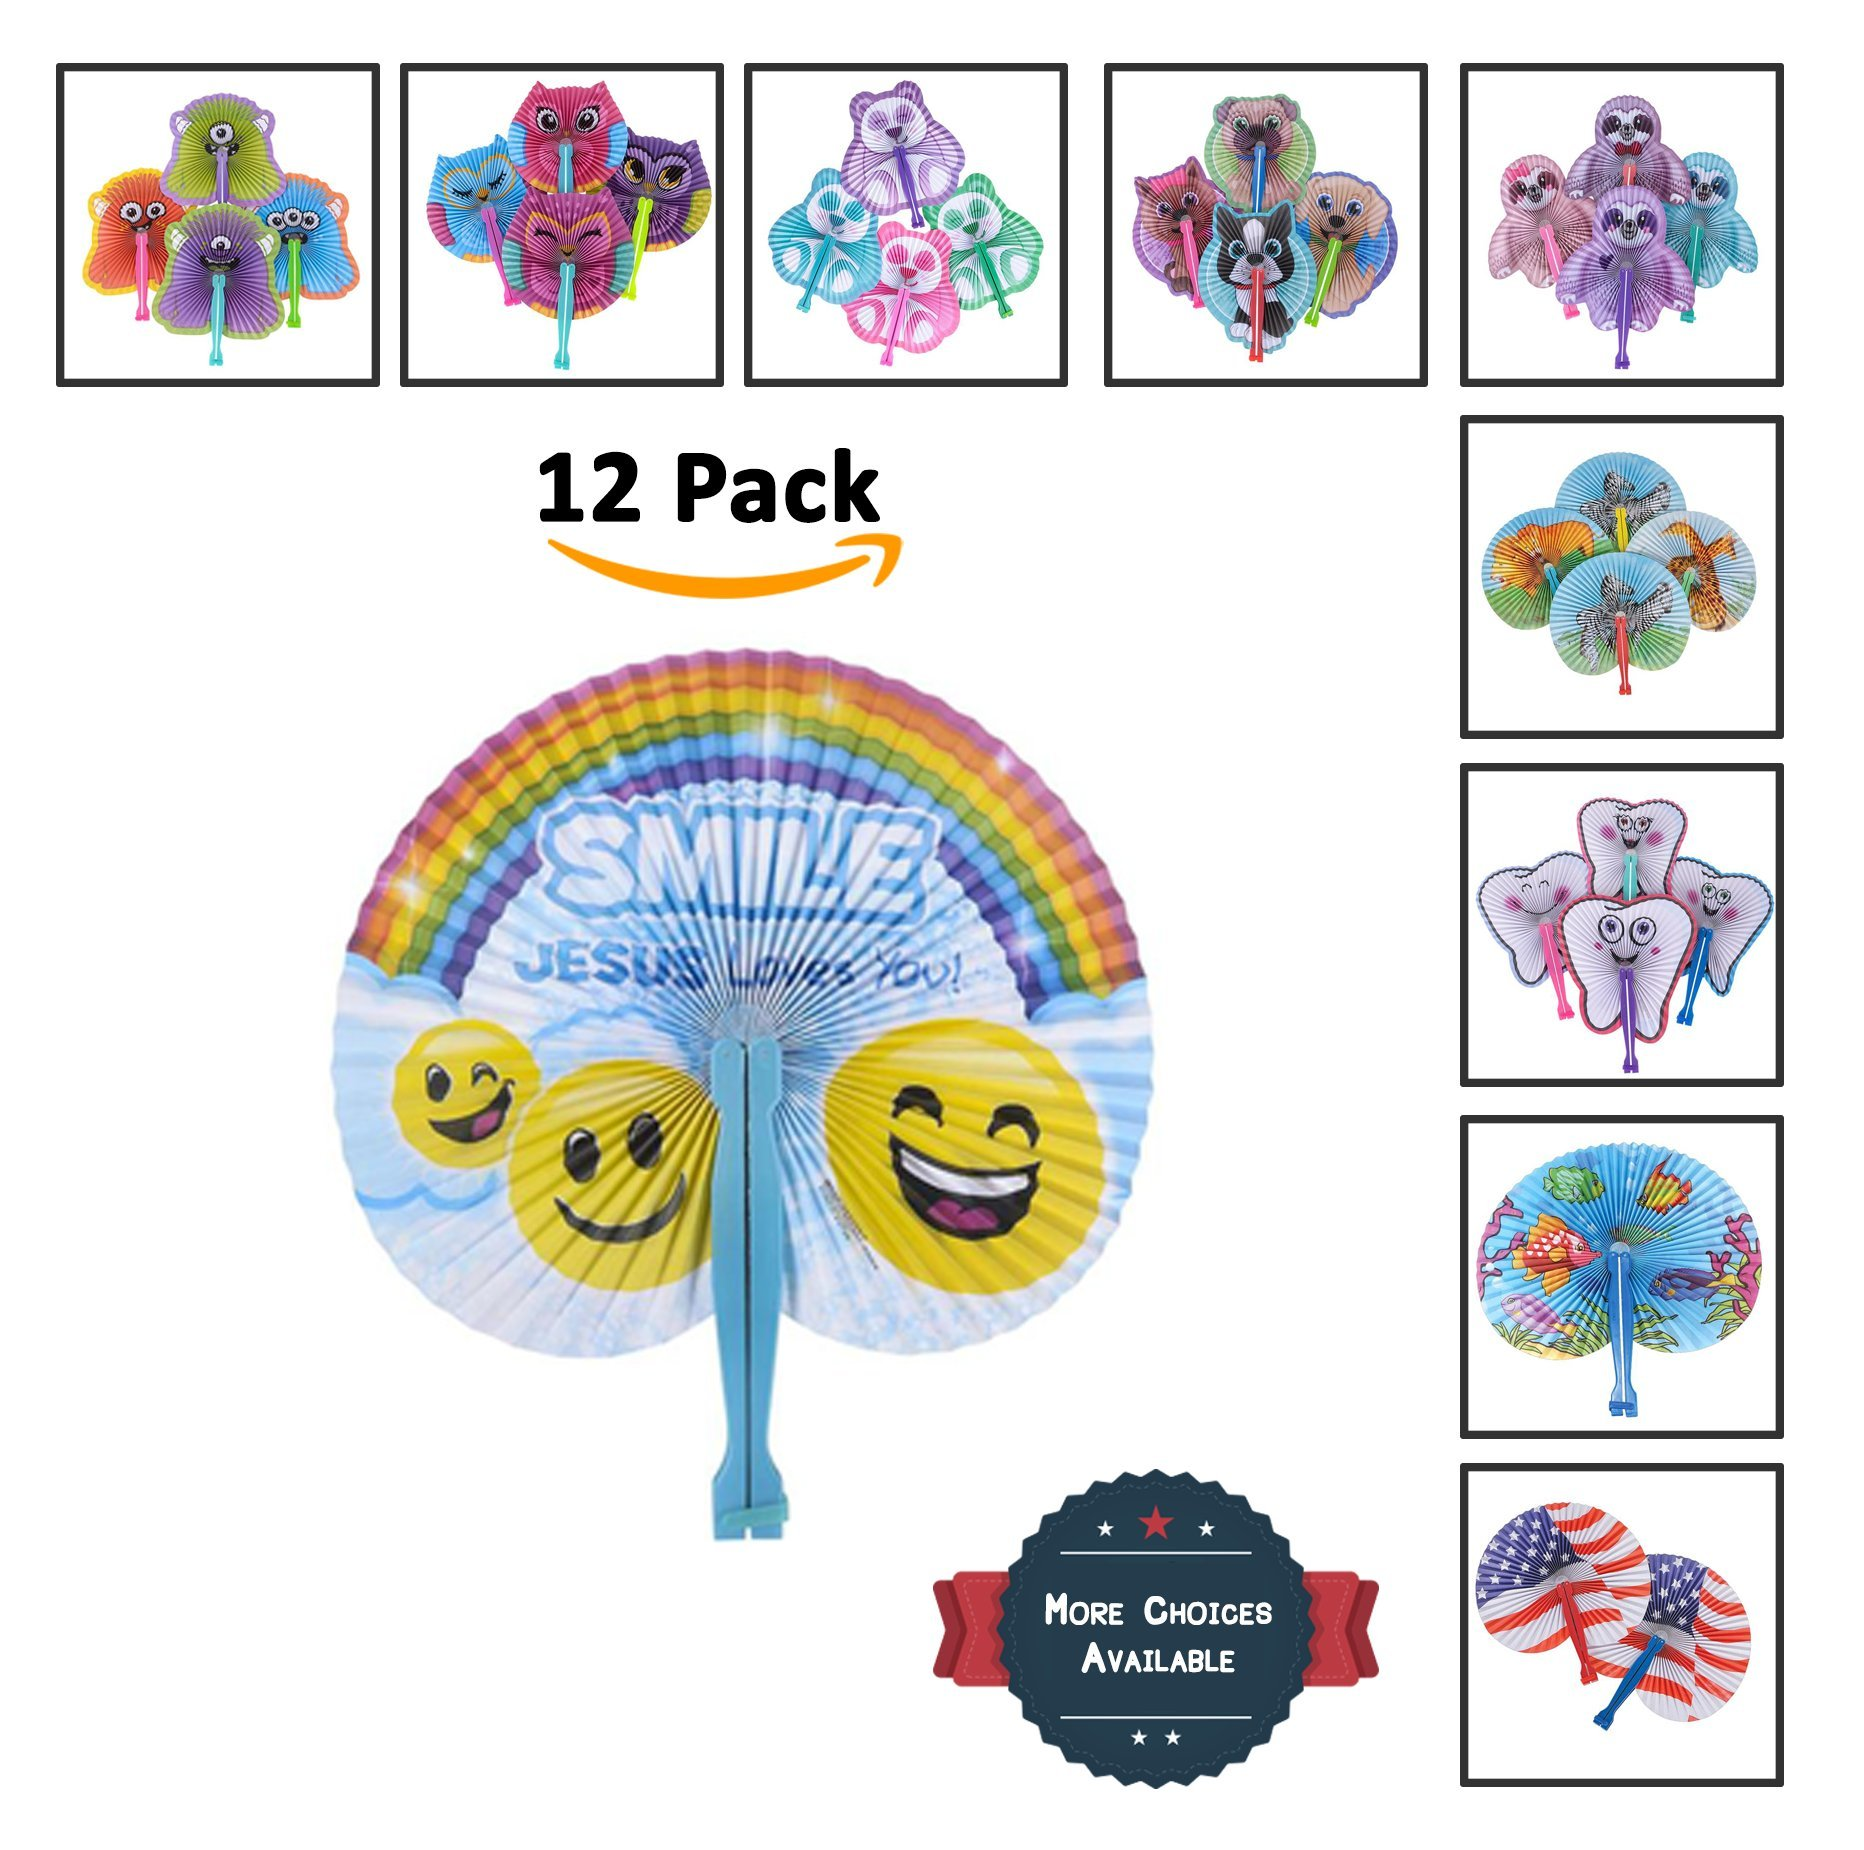 Bargain World 10'' Religious Jesus Folding Fans [12-Pack] | Fun & Exciting Hand Fans For Kids & Teenagers From Our Huge Collection | Sticky Notes Included